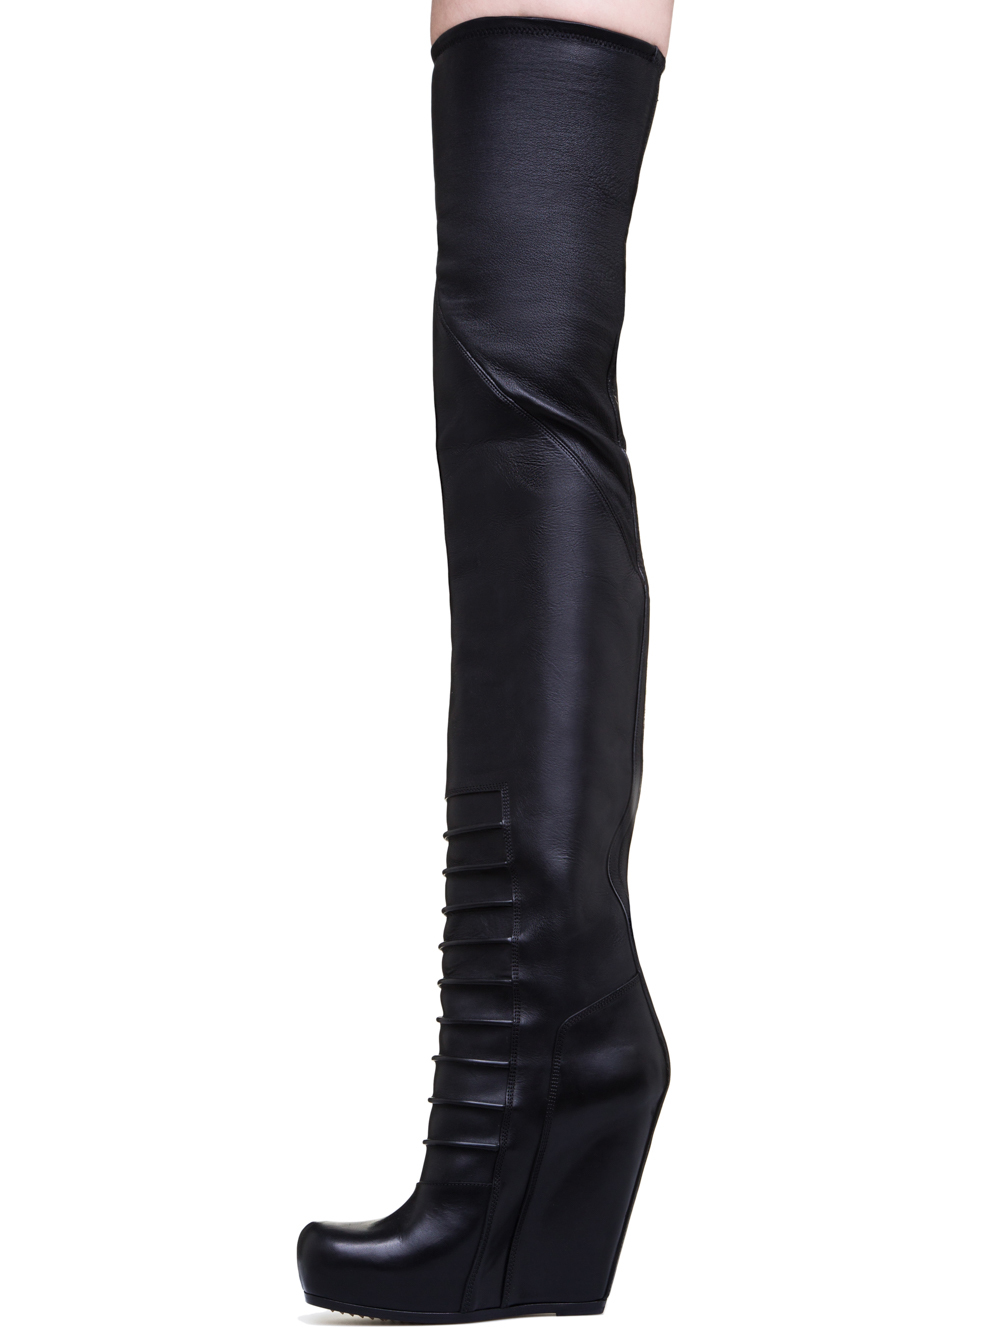 RICK OWENS  RUHLMANN KNEE-HIGH BOOTS IN BLACK